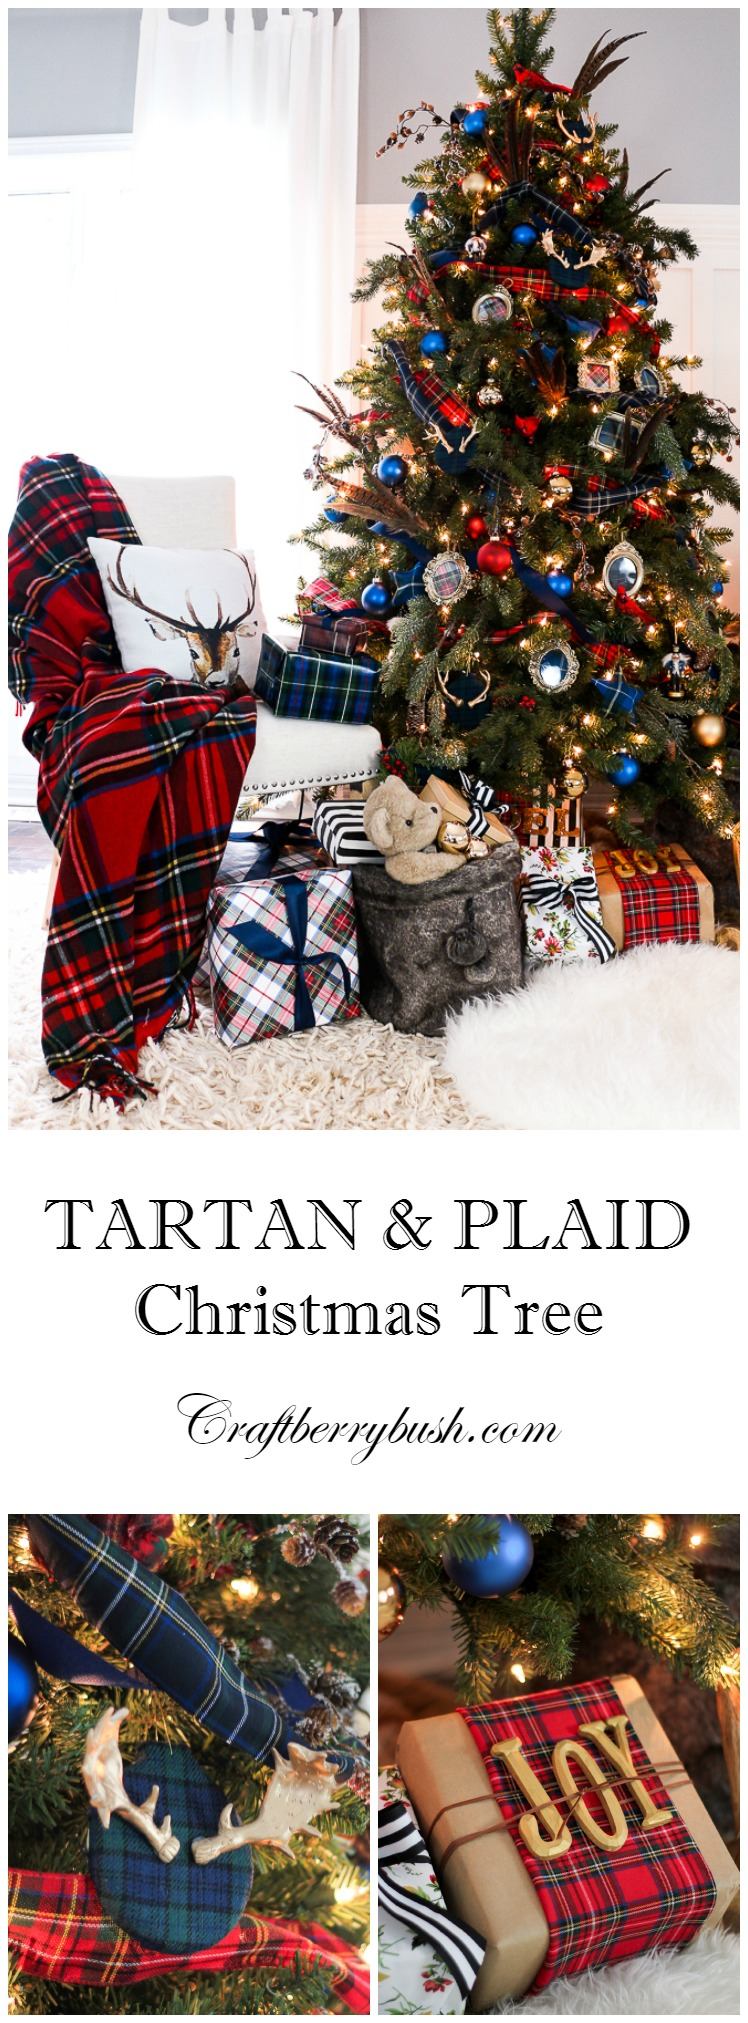 tartanandplaichristmastreecraftberrybush - Tartan Plaid Christmas Decor